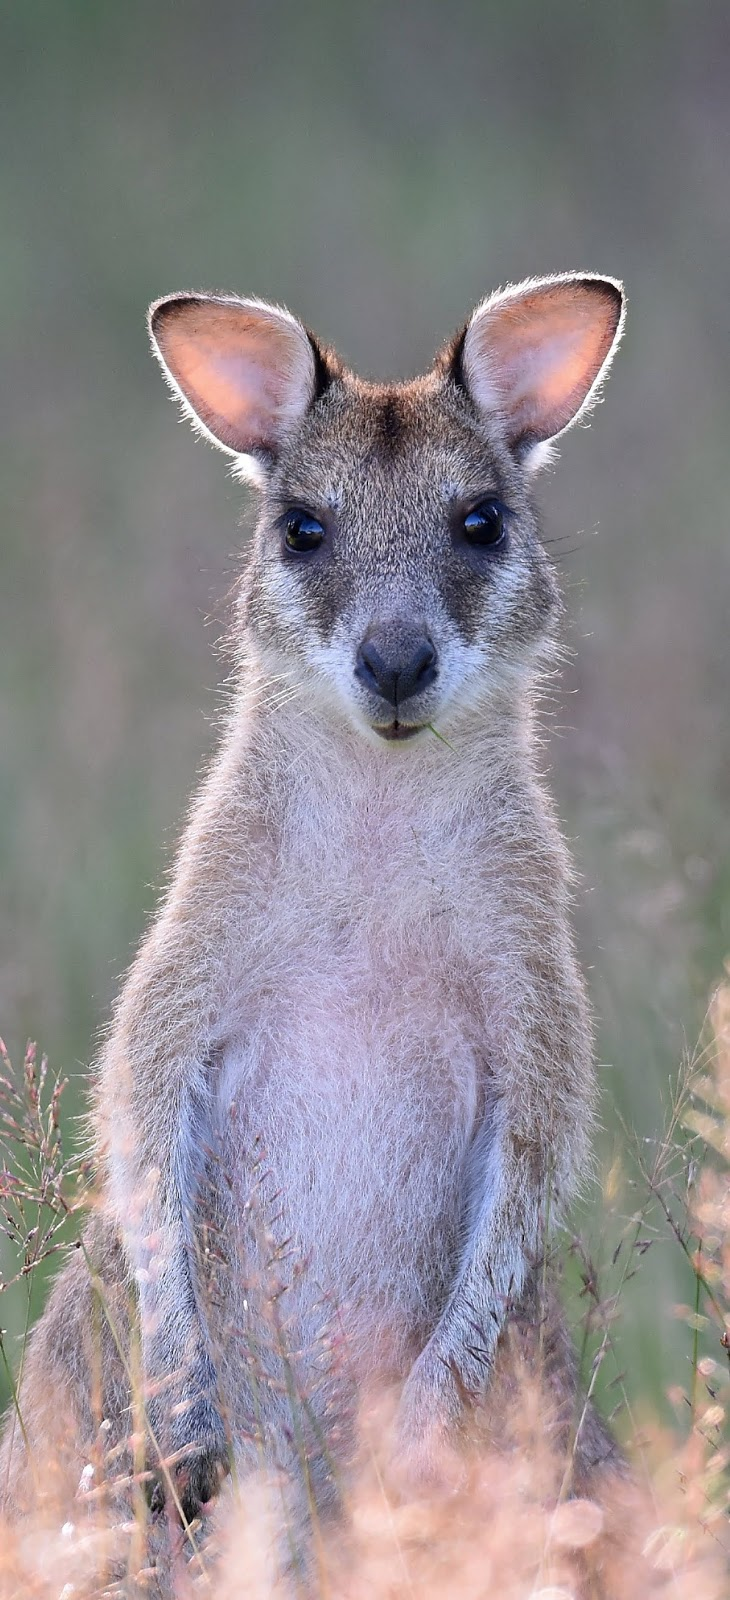 Picture of a cute wallaby.